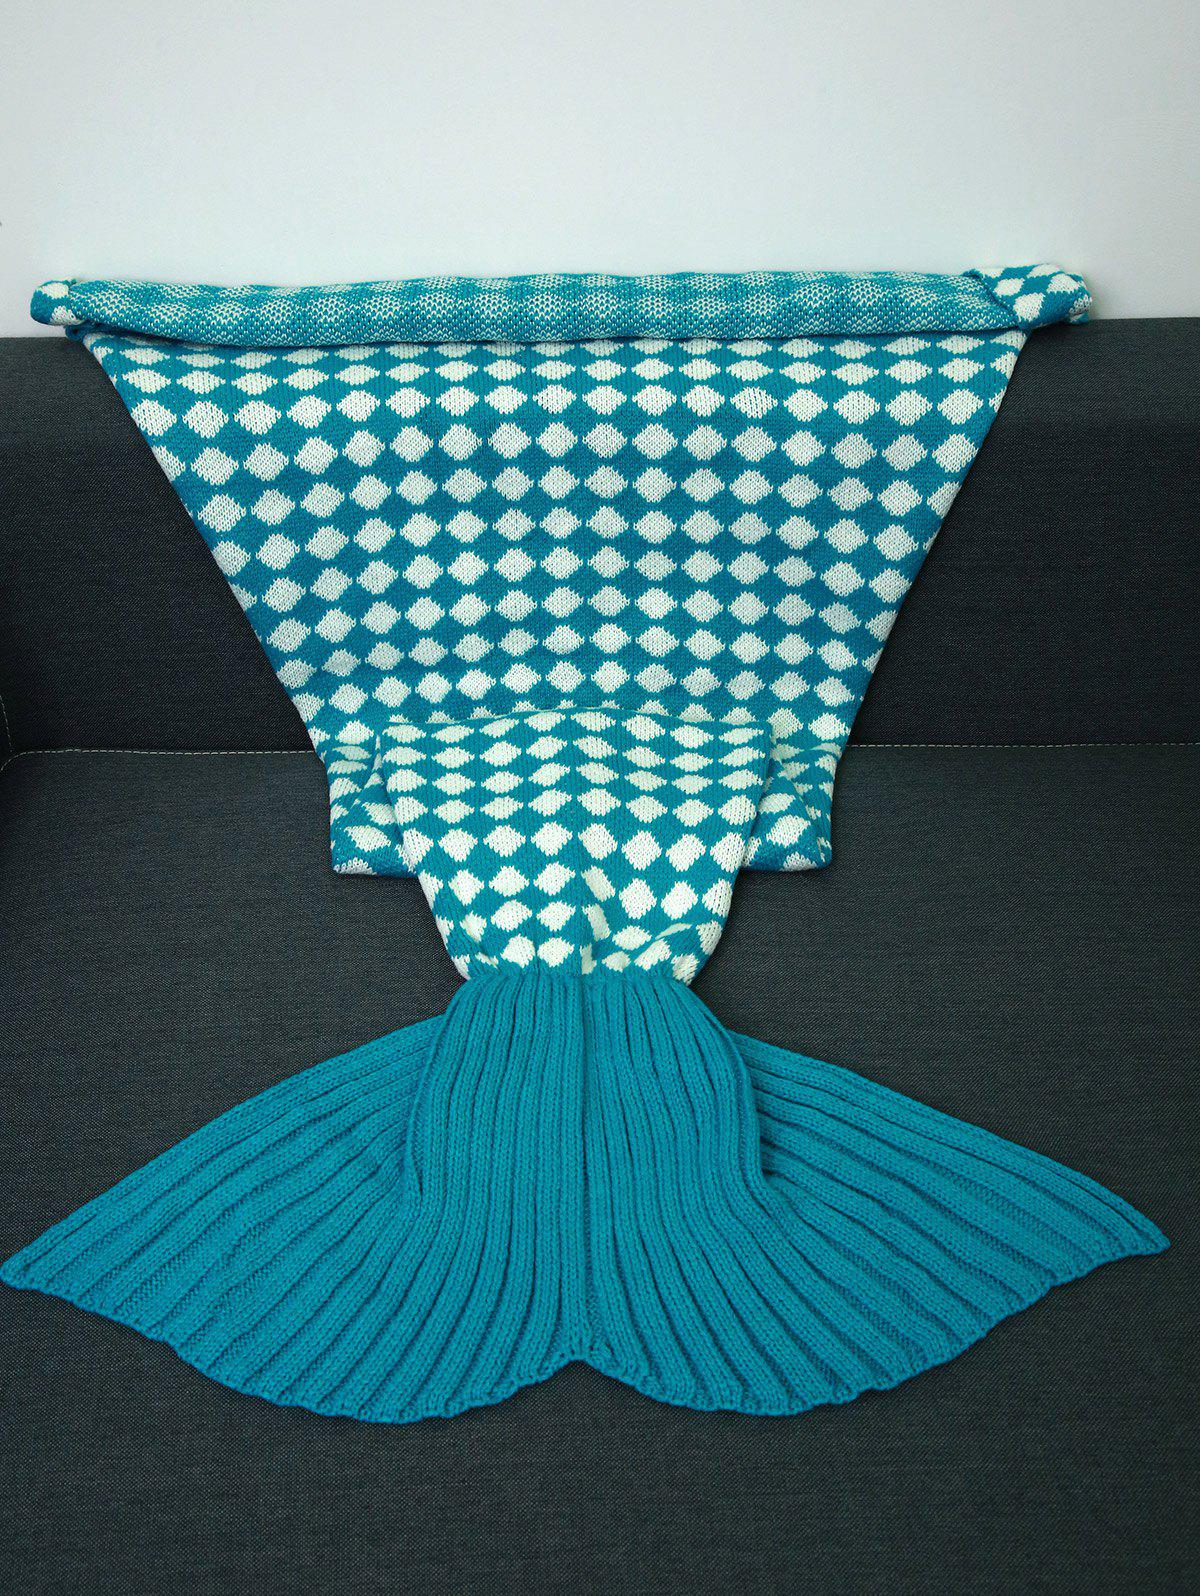 Fashion Warmth Inclined Plaid Pattern Knitted Mermaid Tail Blanket